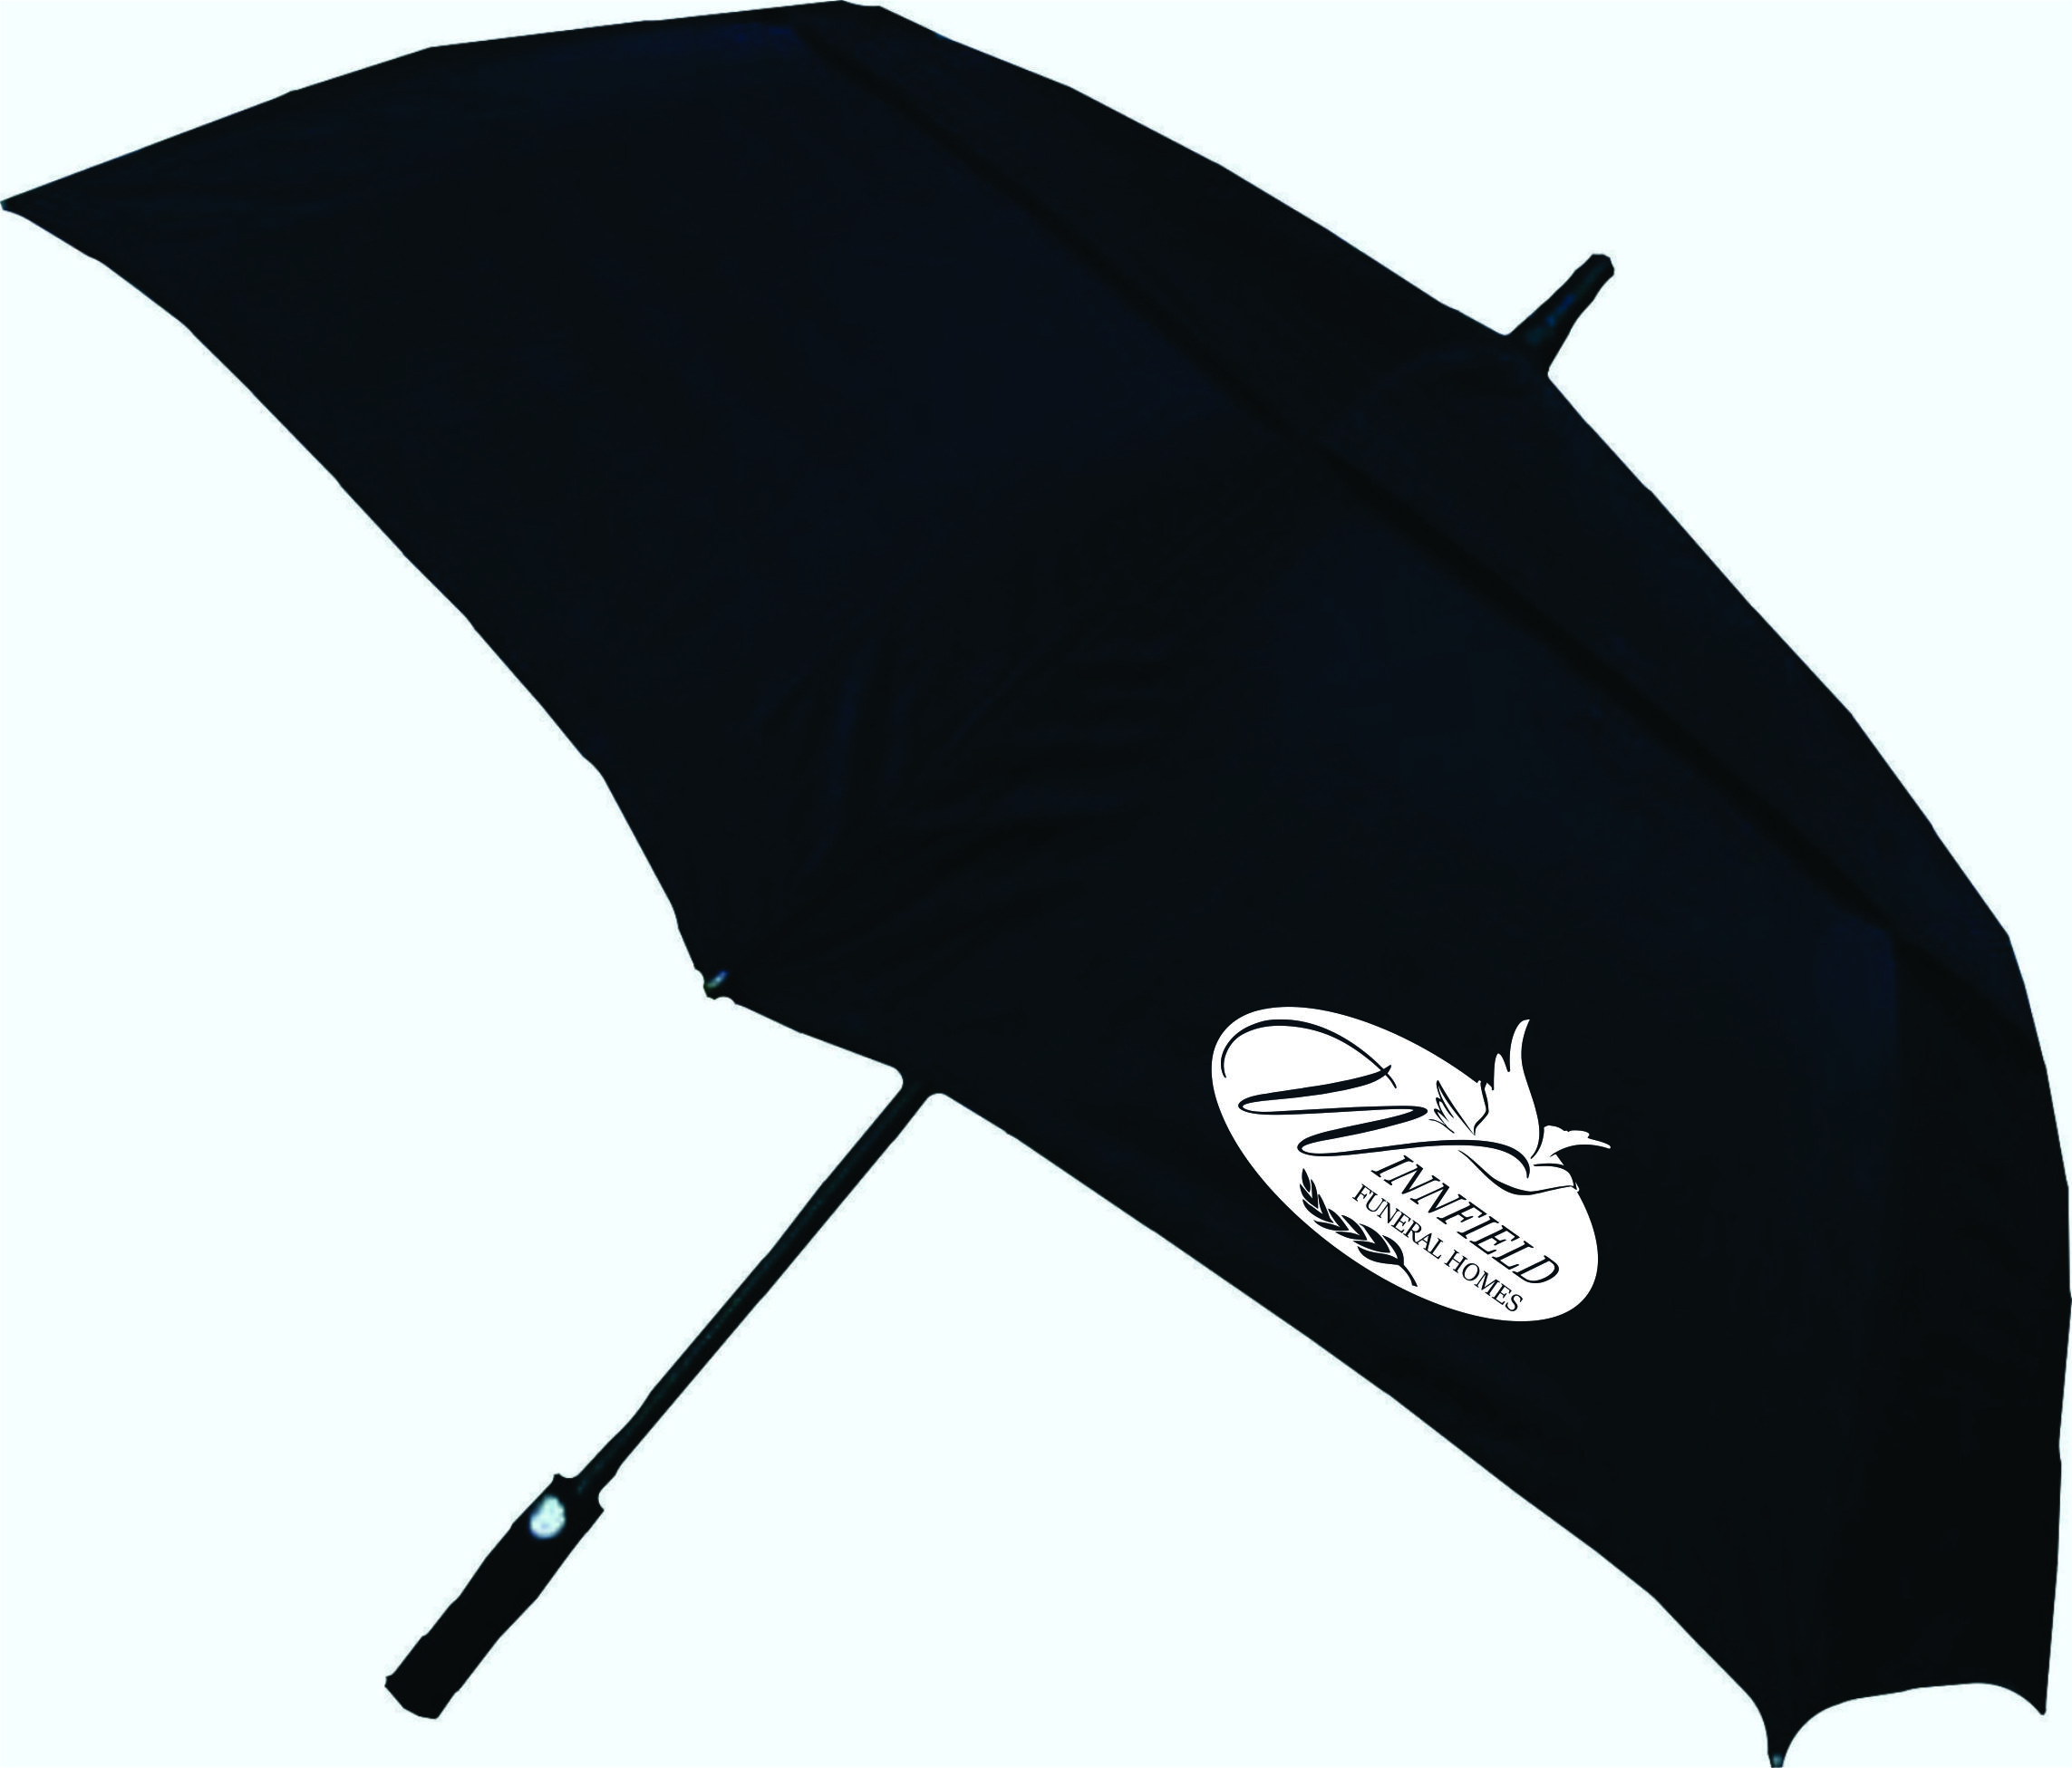 Beautiful Sale Iowa Sale Indiana Eral Homes Black Eral Home Umbrellas Premium Quality Umbrellas Eral Homes This Umbrella Is Only Available curbed Funeral Homes For Sale